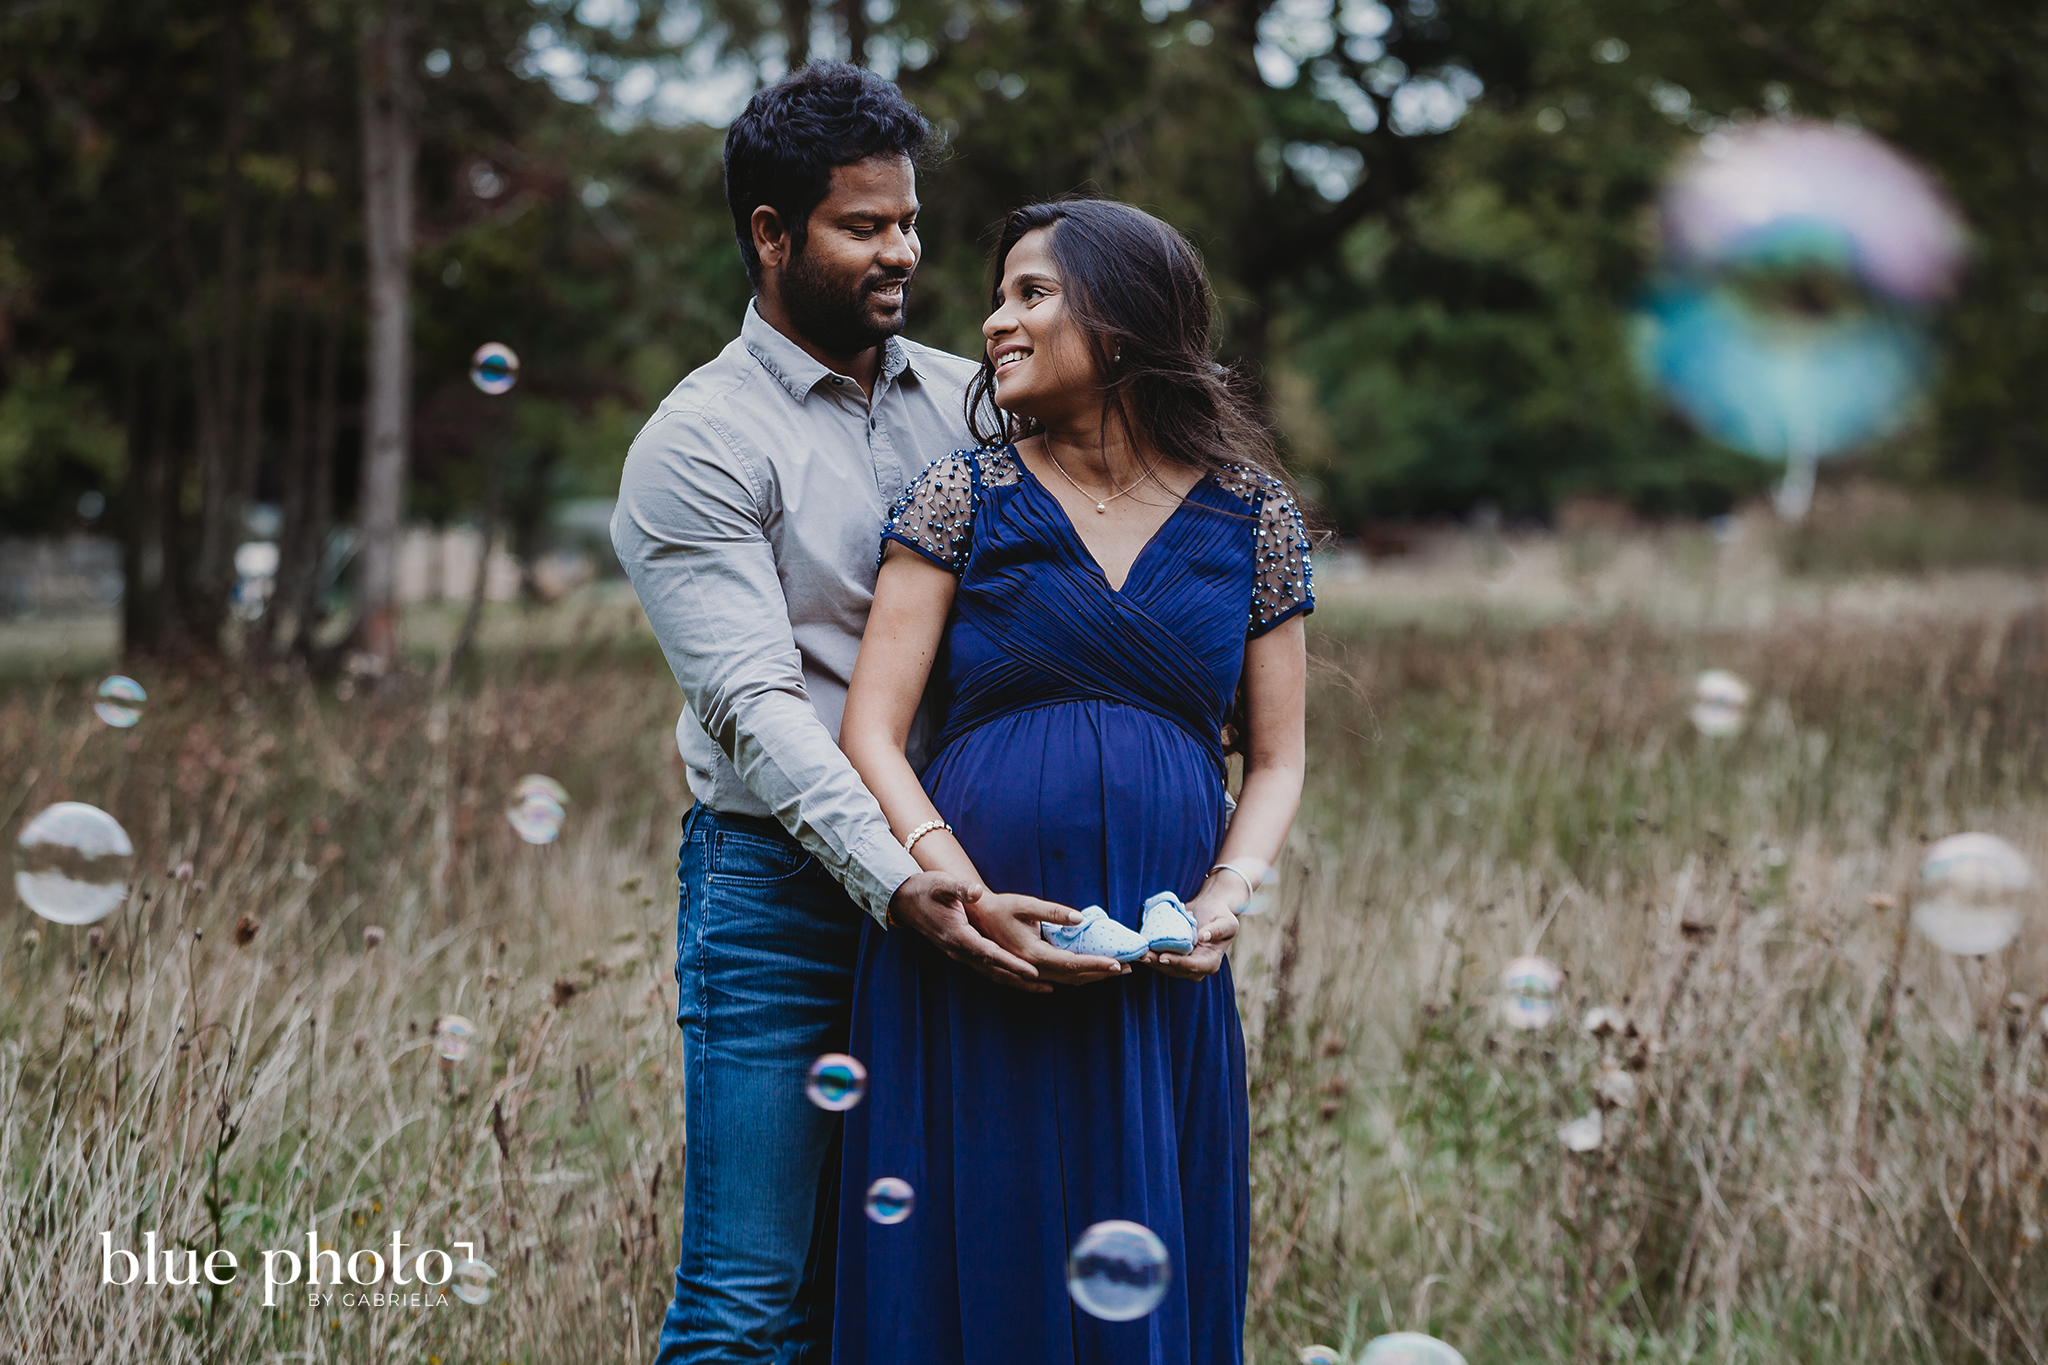 Socially distanced maternity session in West London. The couple is looking at each other and smiling.